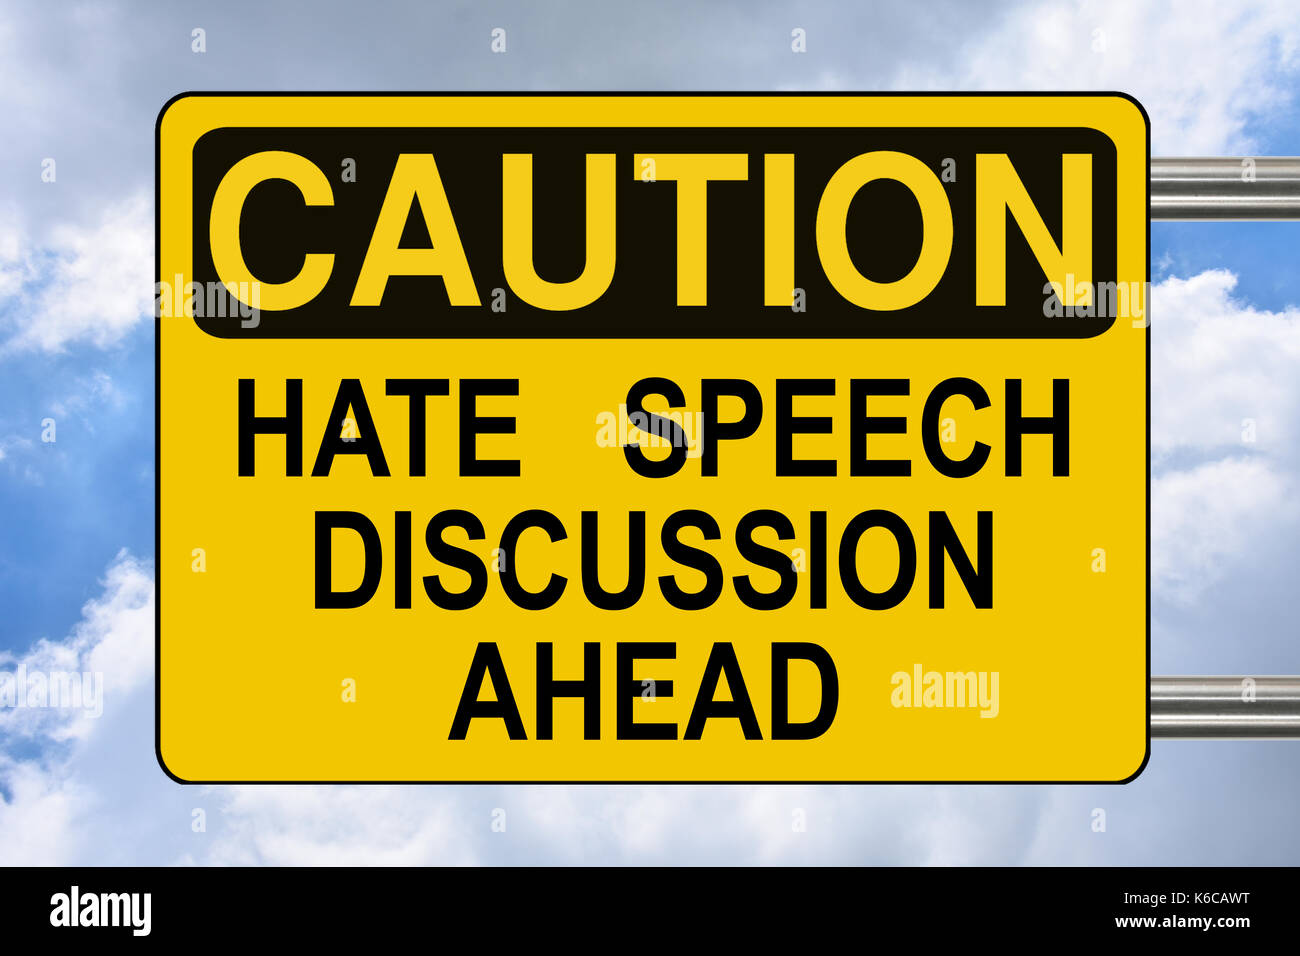 Hate speech ahead, yellow road warning sign - Stock Image